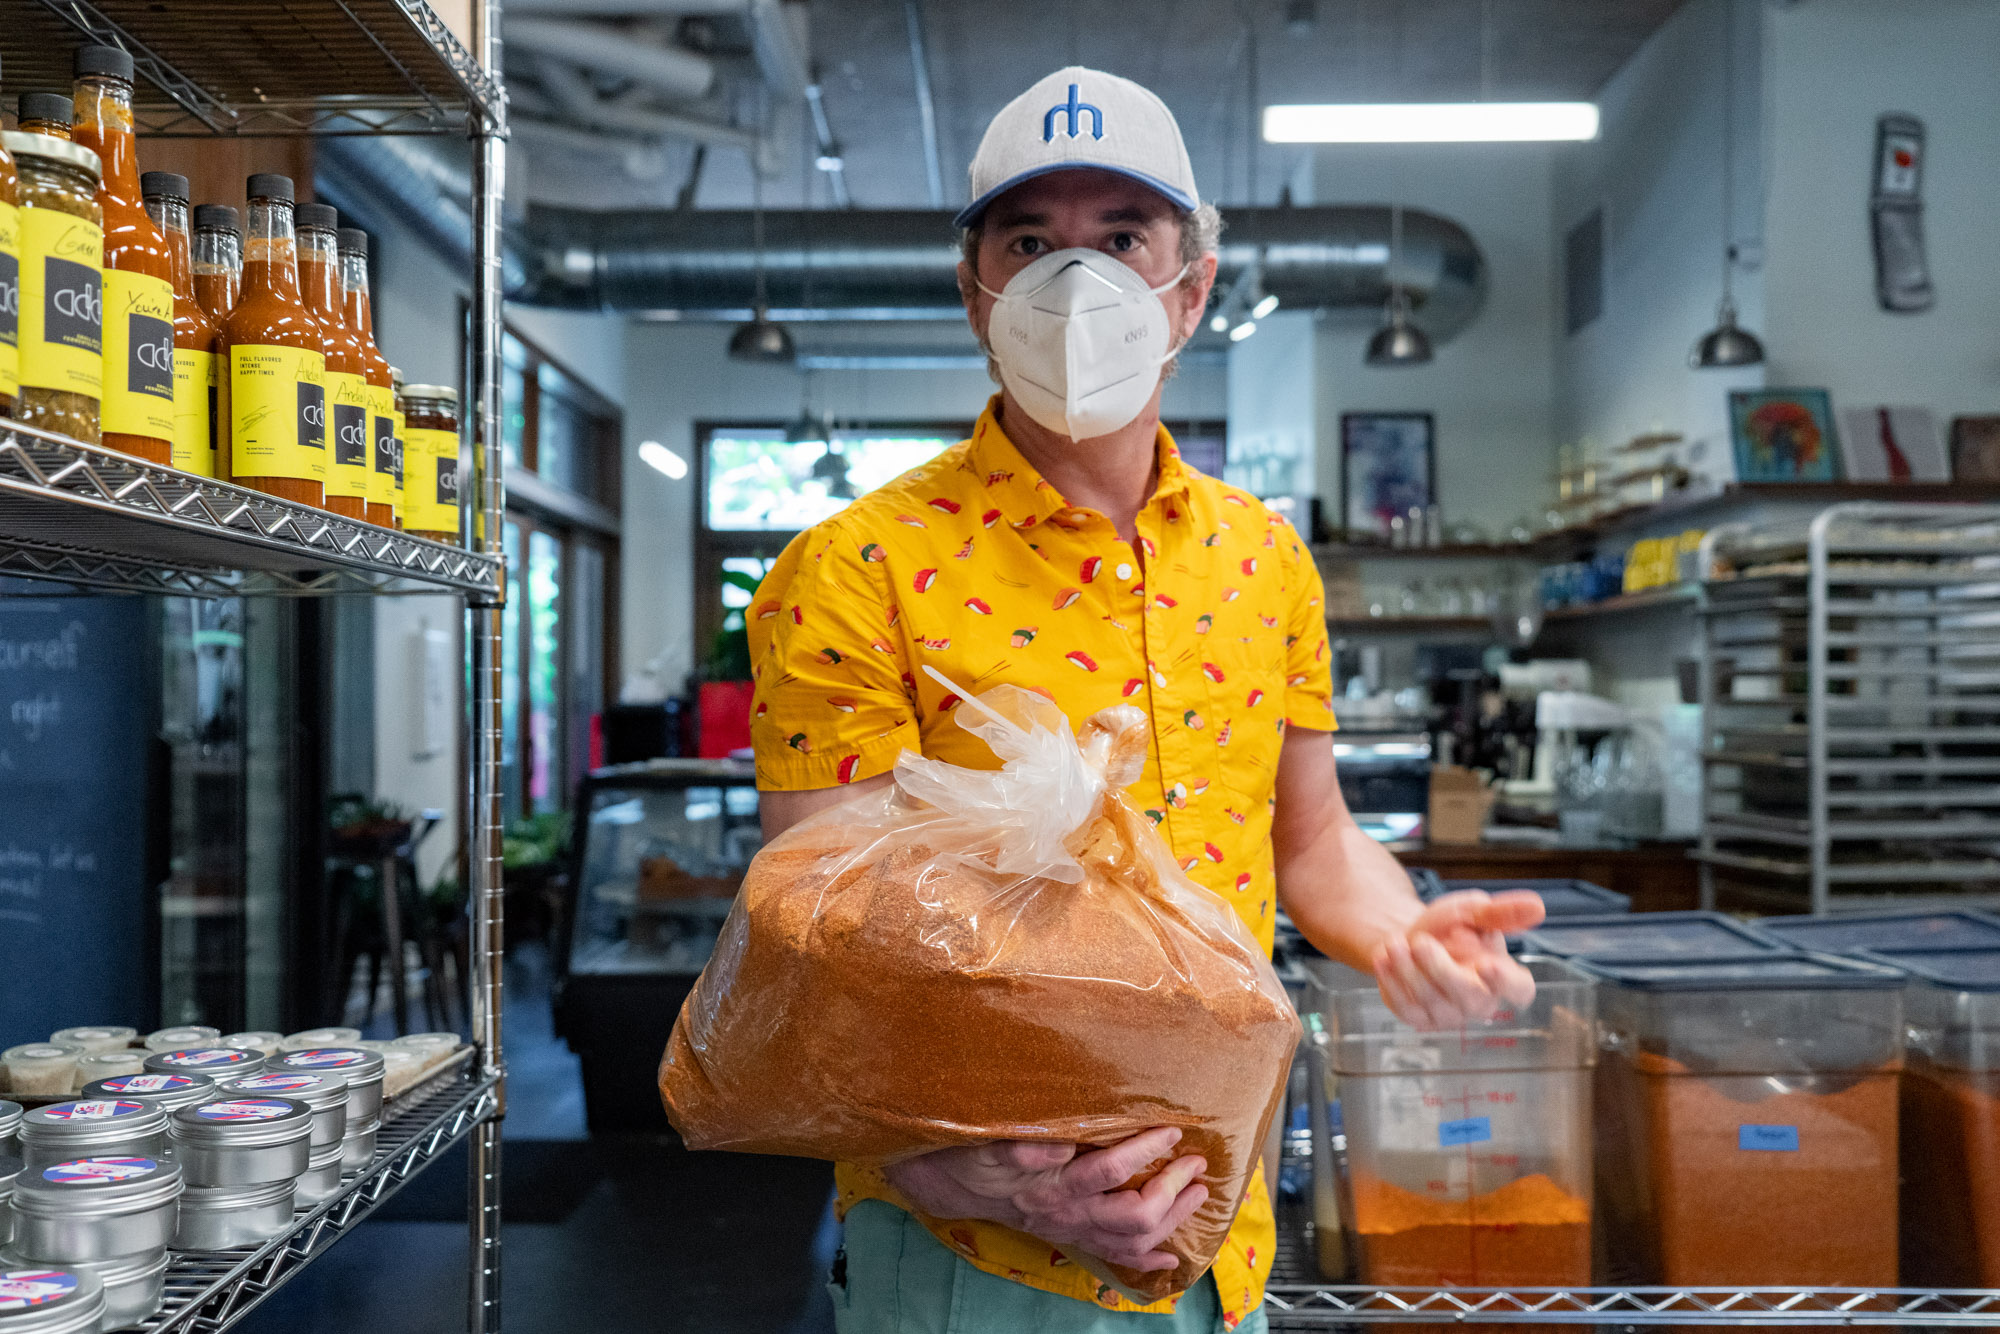 A man wearing a face mask holds a bag of spices